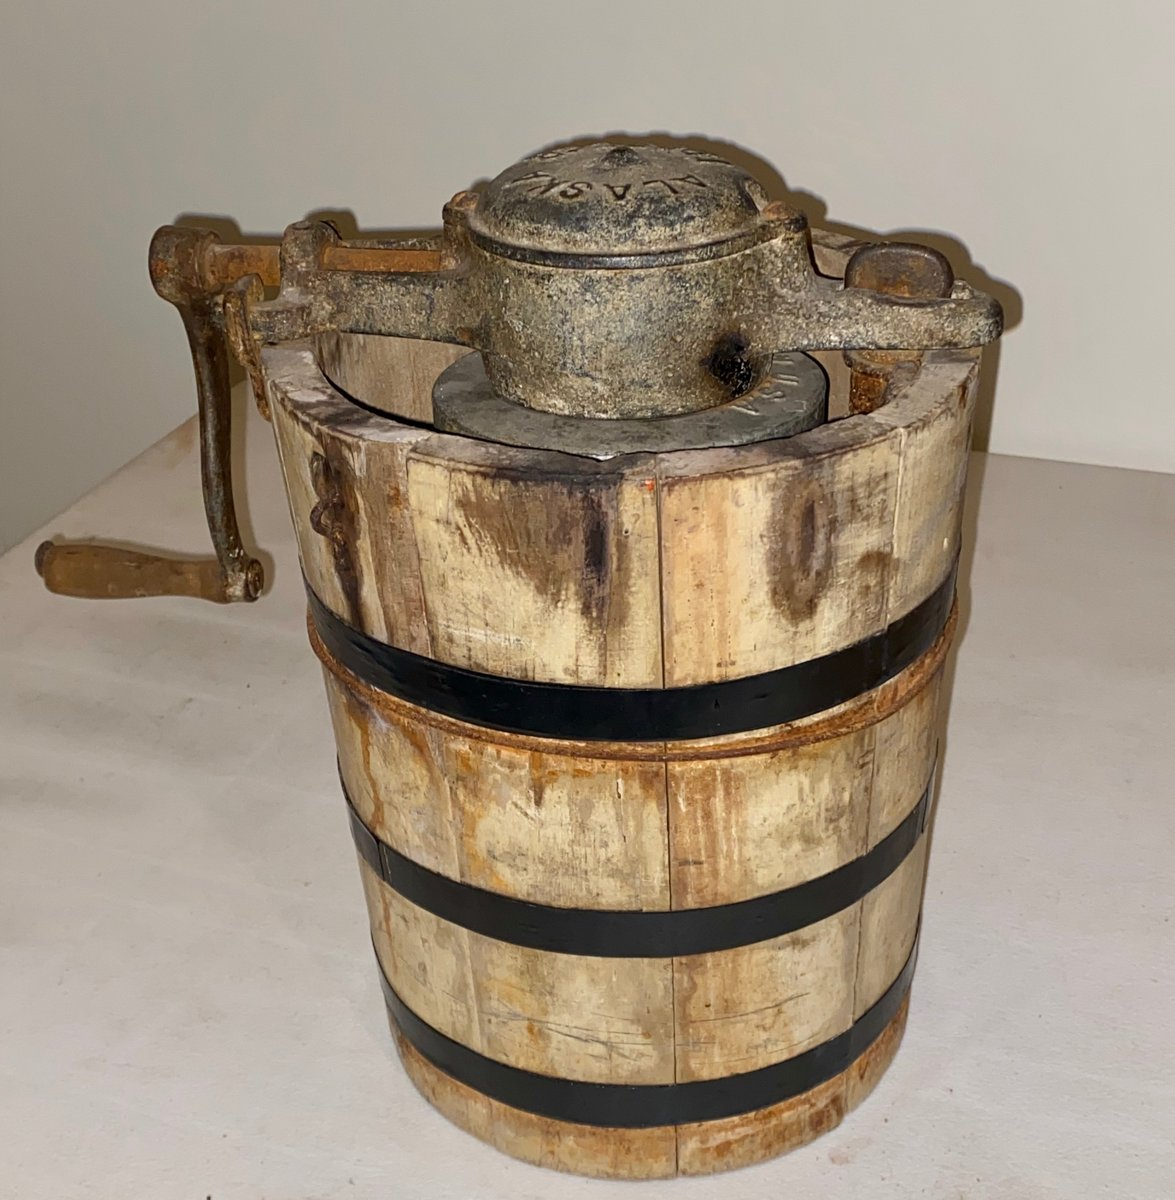 "Thanks to all who liked/commented on today's object of the week. It is an ice cream maker! This hand-crank wooden ""Alaska"" ice cream maker used ice, salt & an ice cream mixture to produce frozen treats. Check back next Tuesday for our next treasure. #Museums #History #icecream"